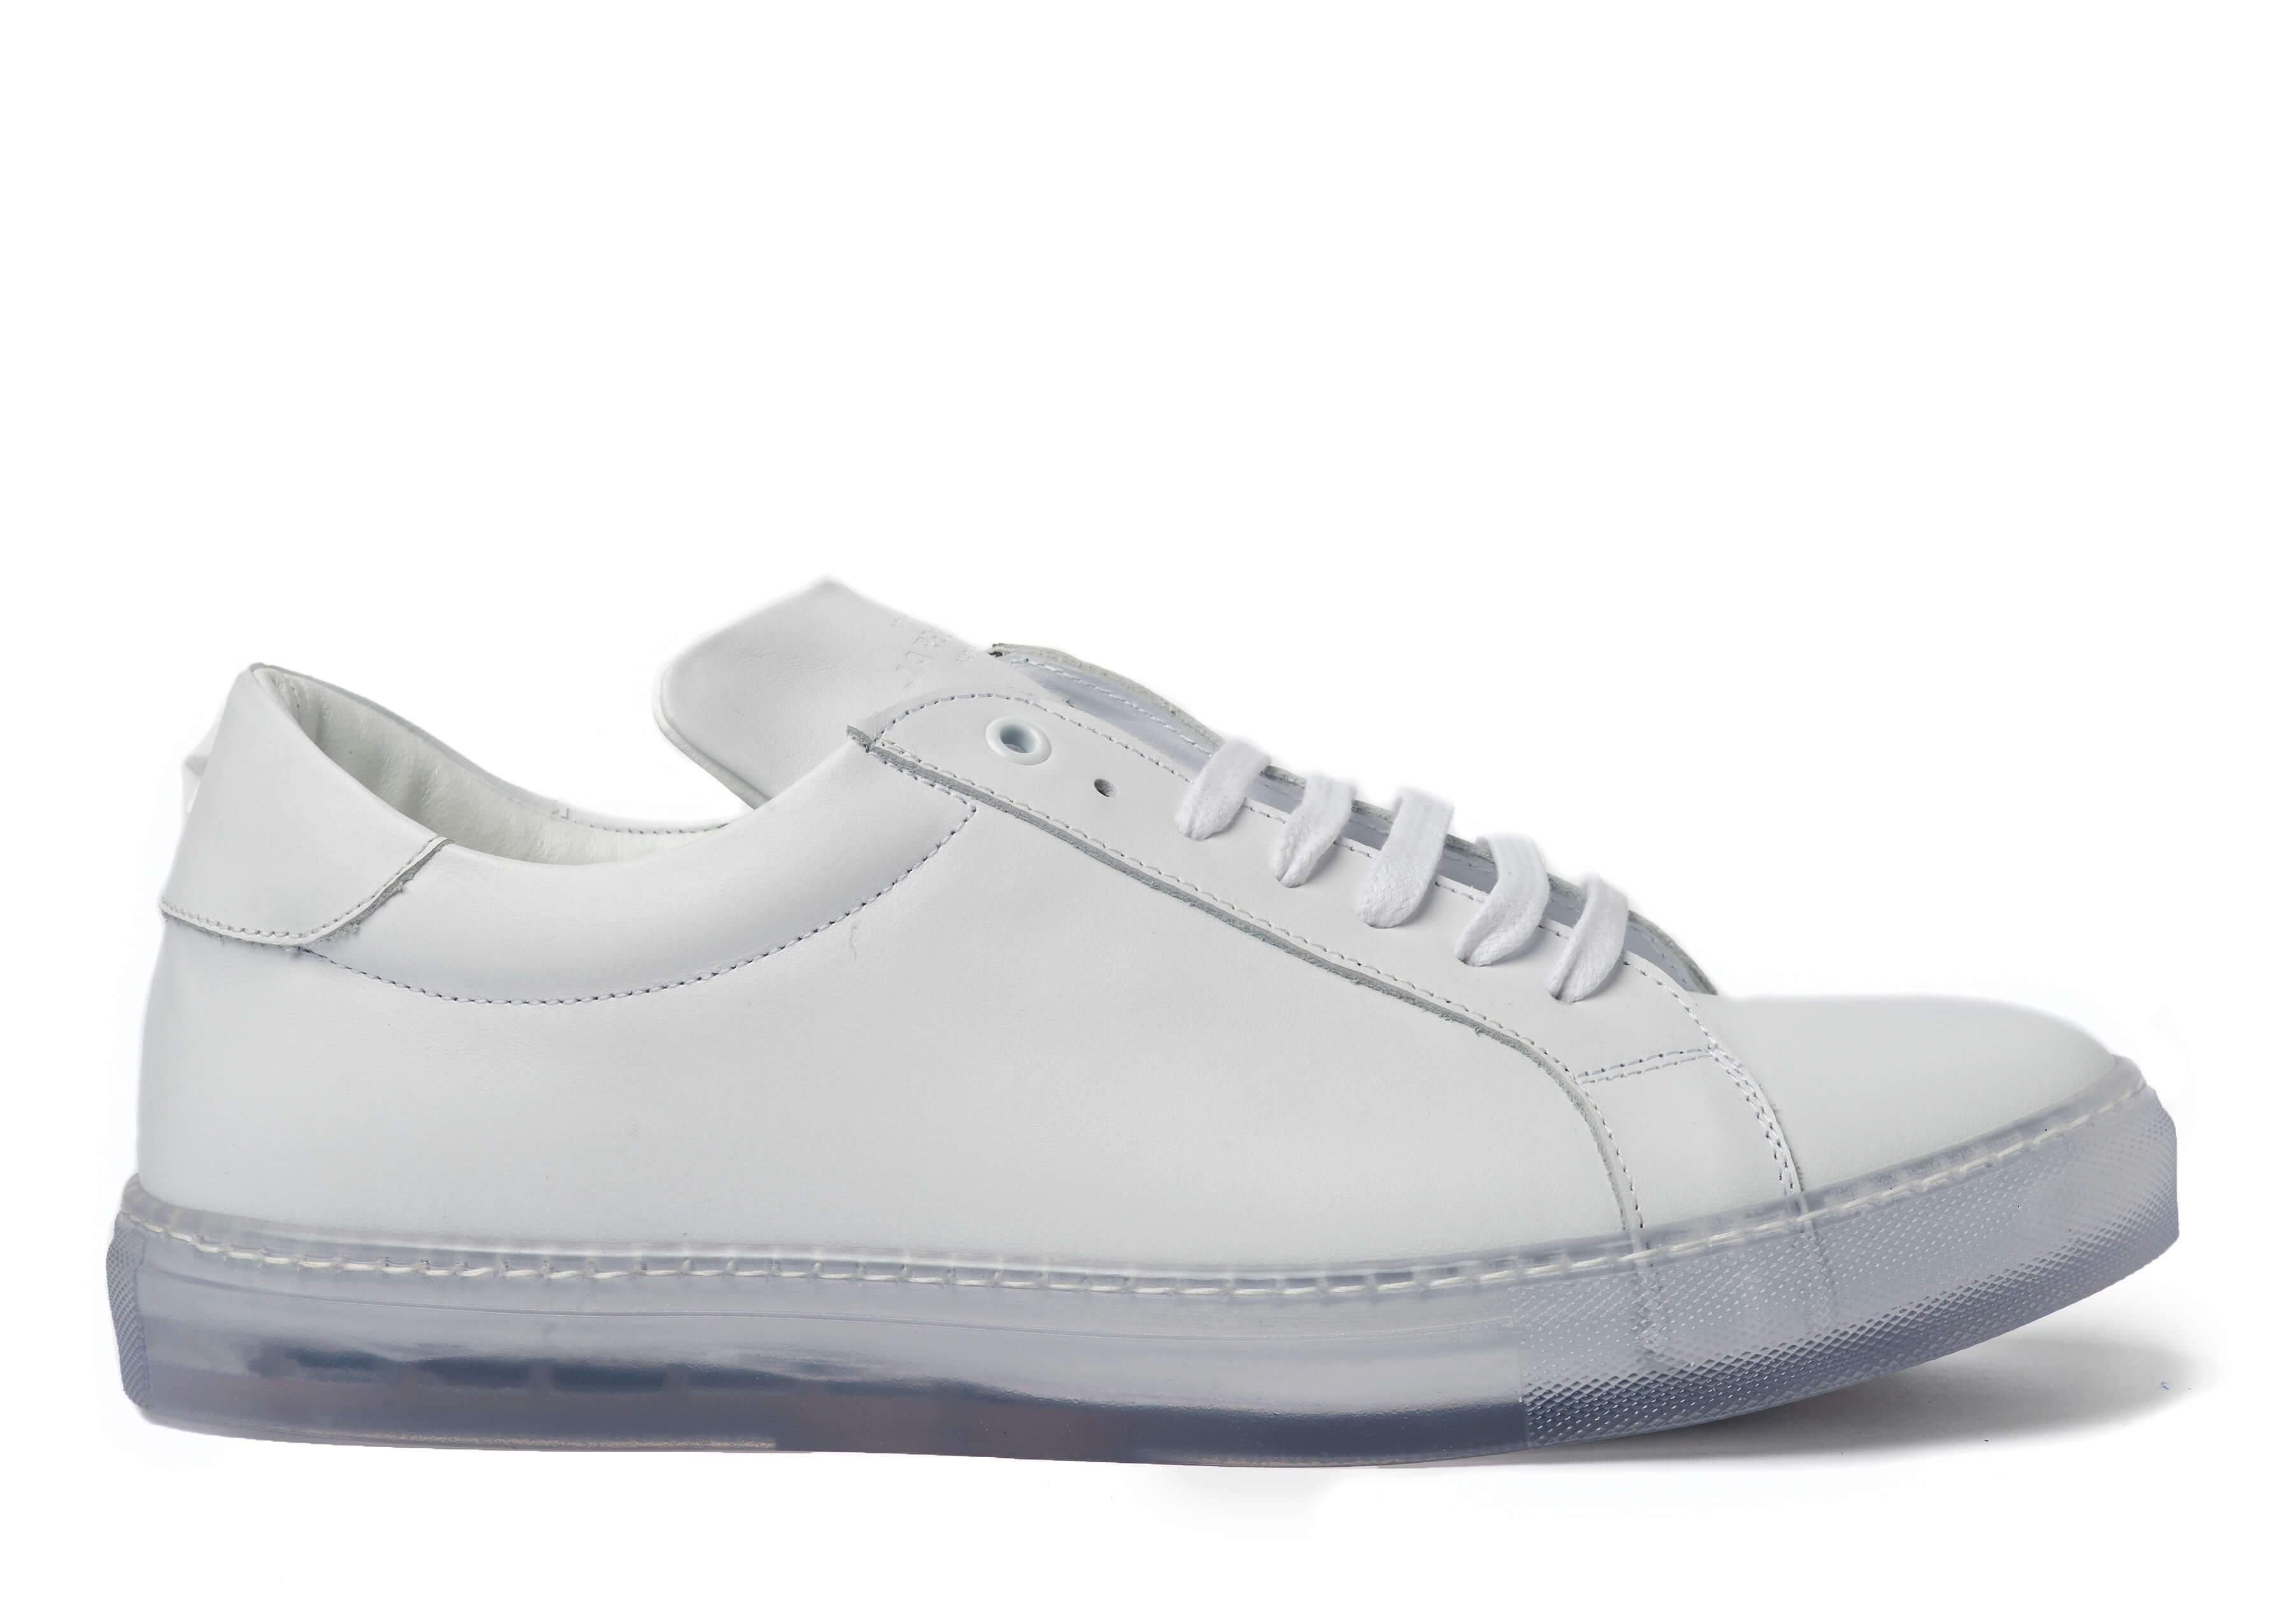 White Clear Sole Sneakers for Men - Right 1818-CRW - Jared Lang